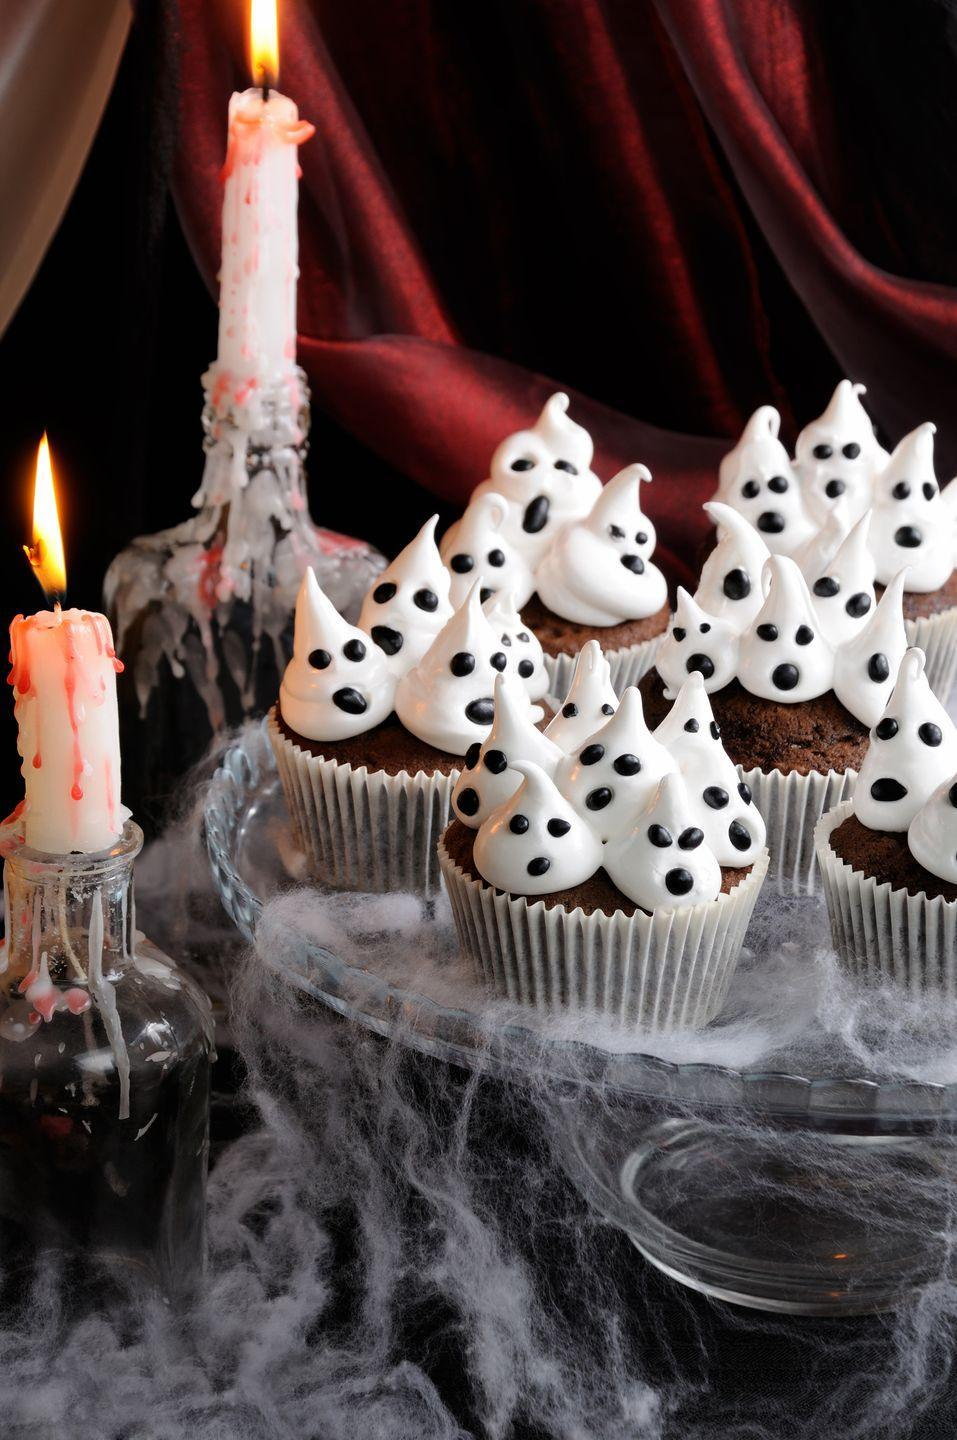 """<p><strong><em>What is """"souling"""" and what do people ask for door to door?</em></strong></p><p><strong>Answer:</strong> Soul-cakes. The tradition of going door to door and singing and collecting soul-cakes (small little cakes to commemorate the dead) began in the 15th century. This activity didn't involve any costumes or threats to trick but likely influenced our modern day tradition of """"trick-or-treating.""""</p>"""